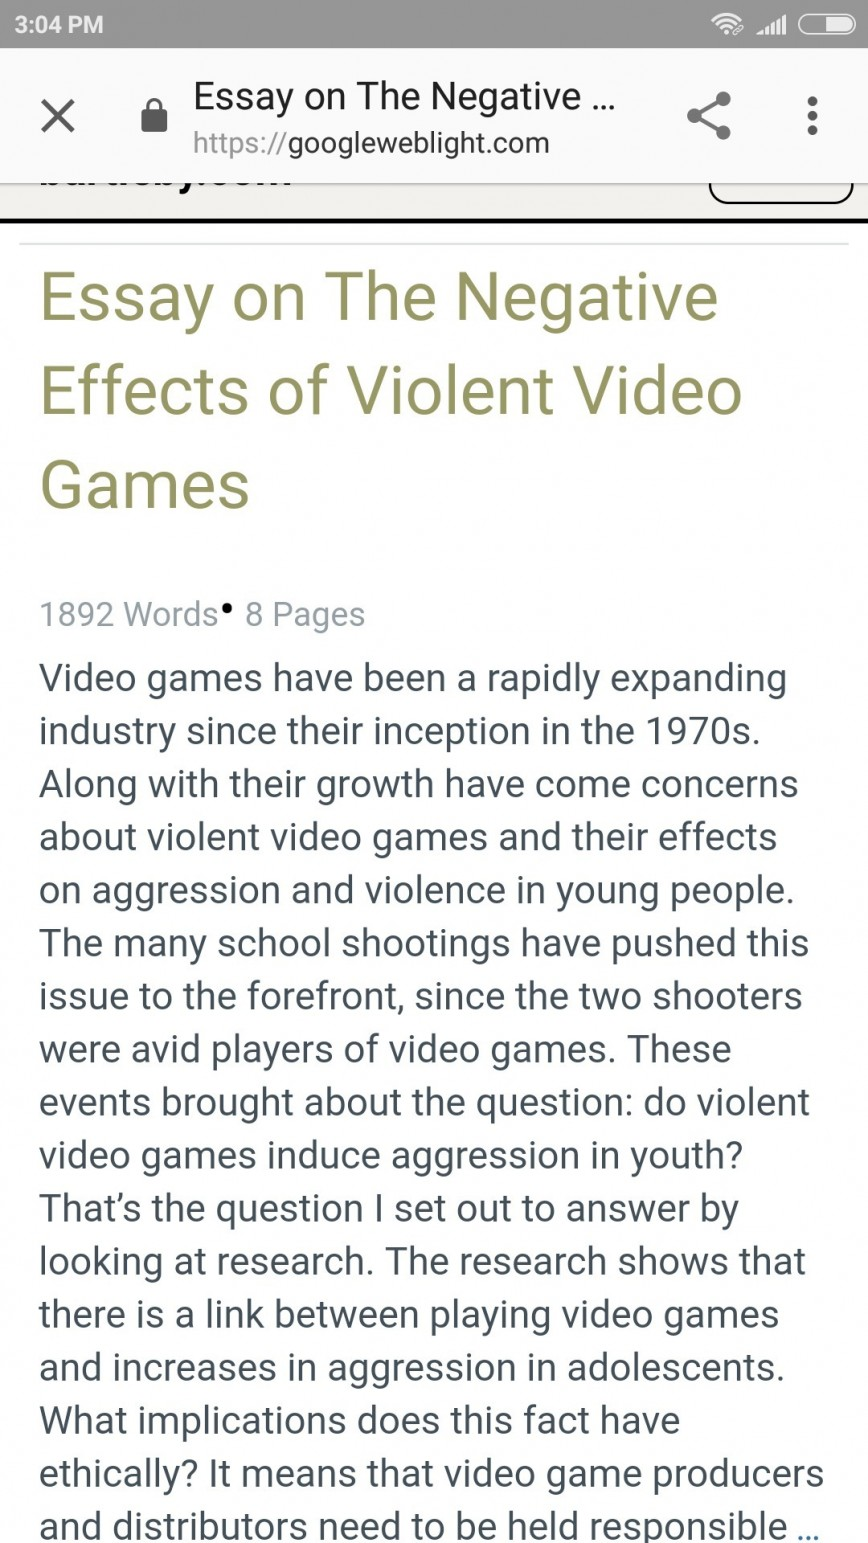 001 Essay Example Negative Effects Of Video Games Top Spm Positive And Pdf